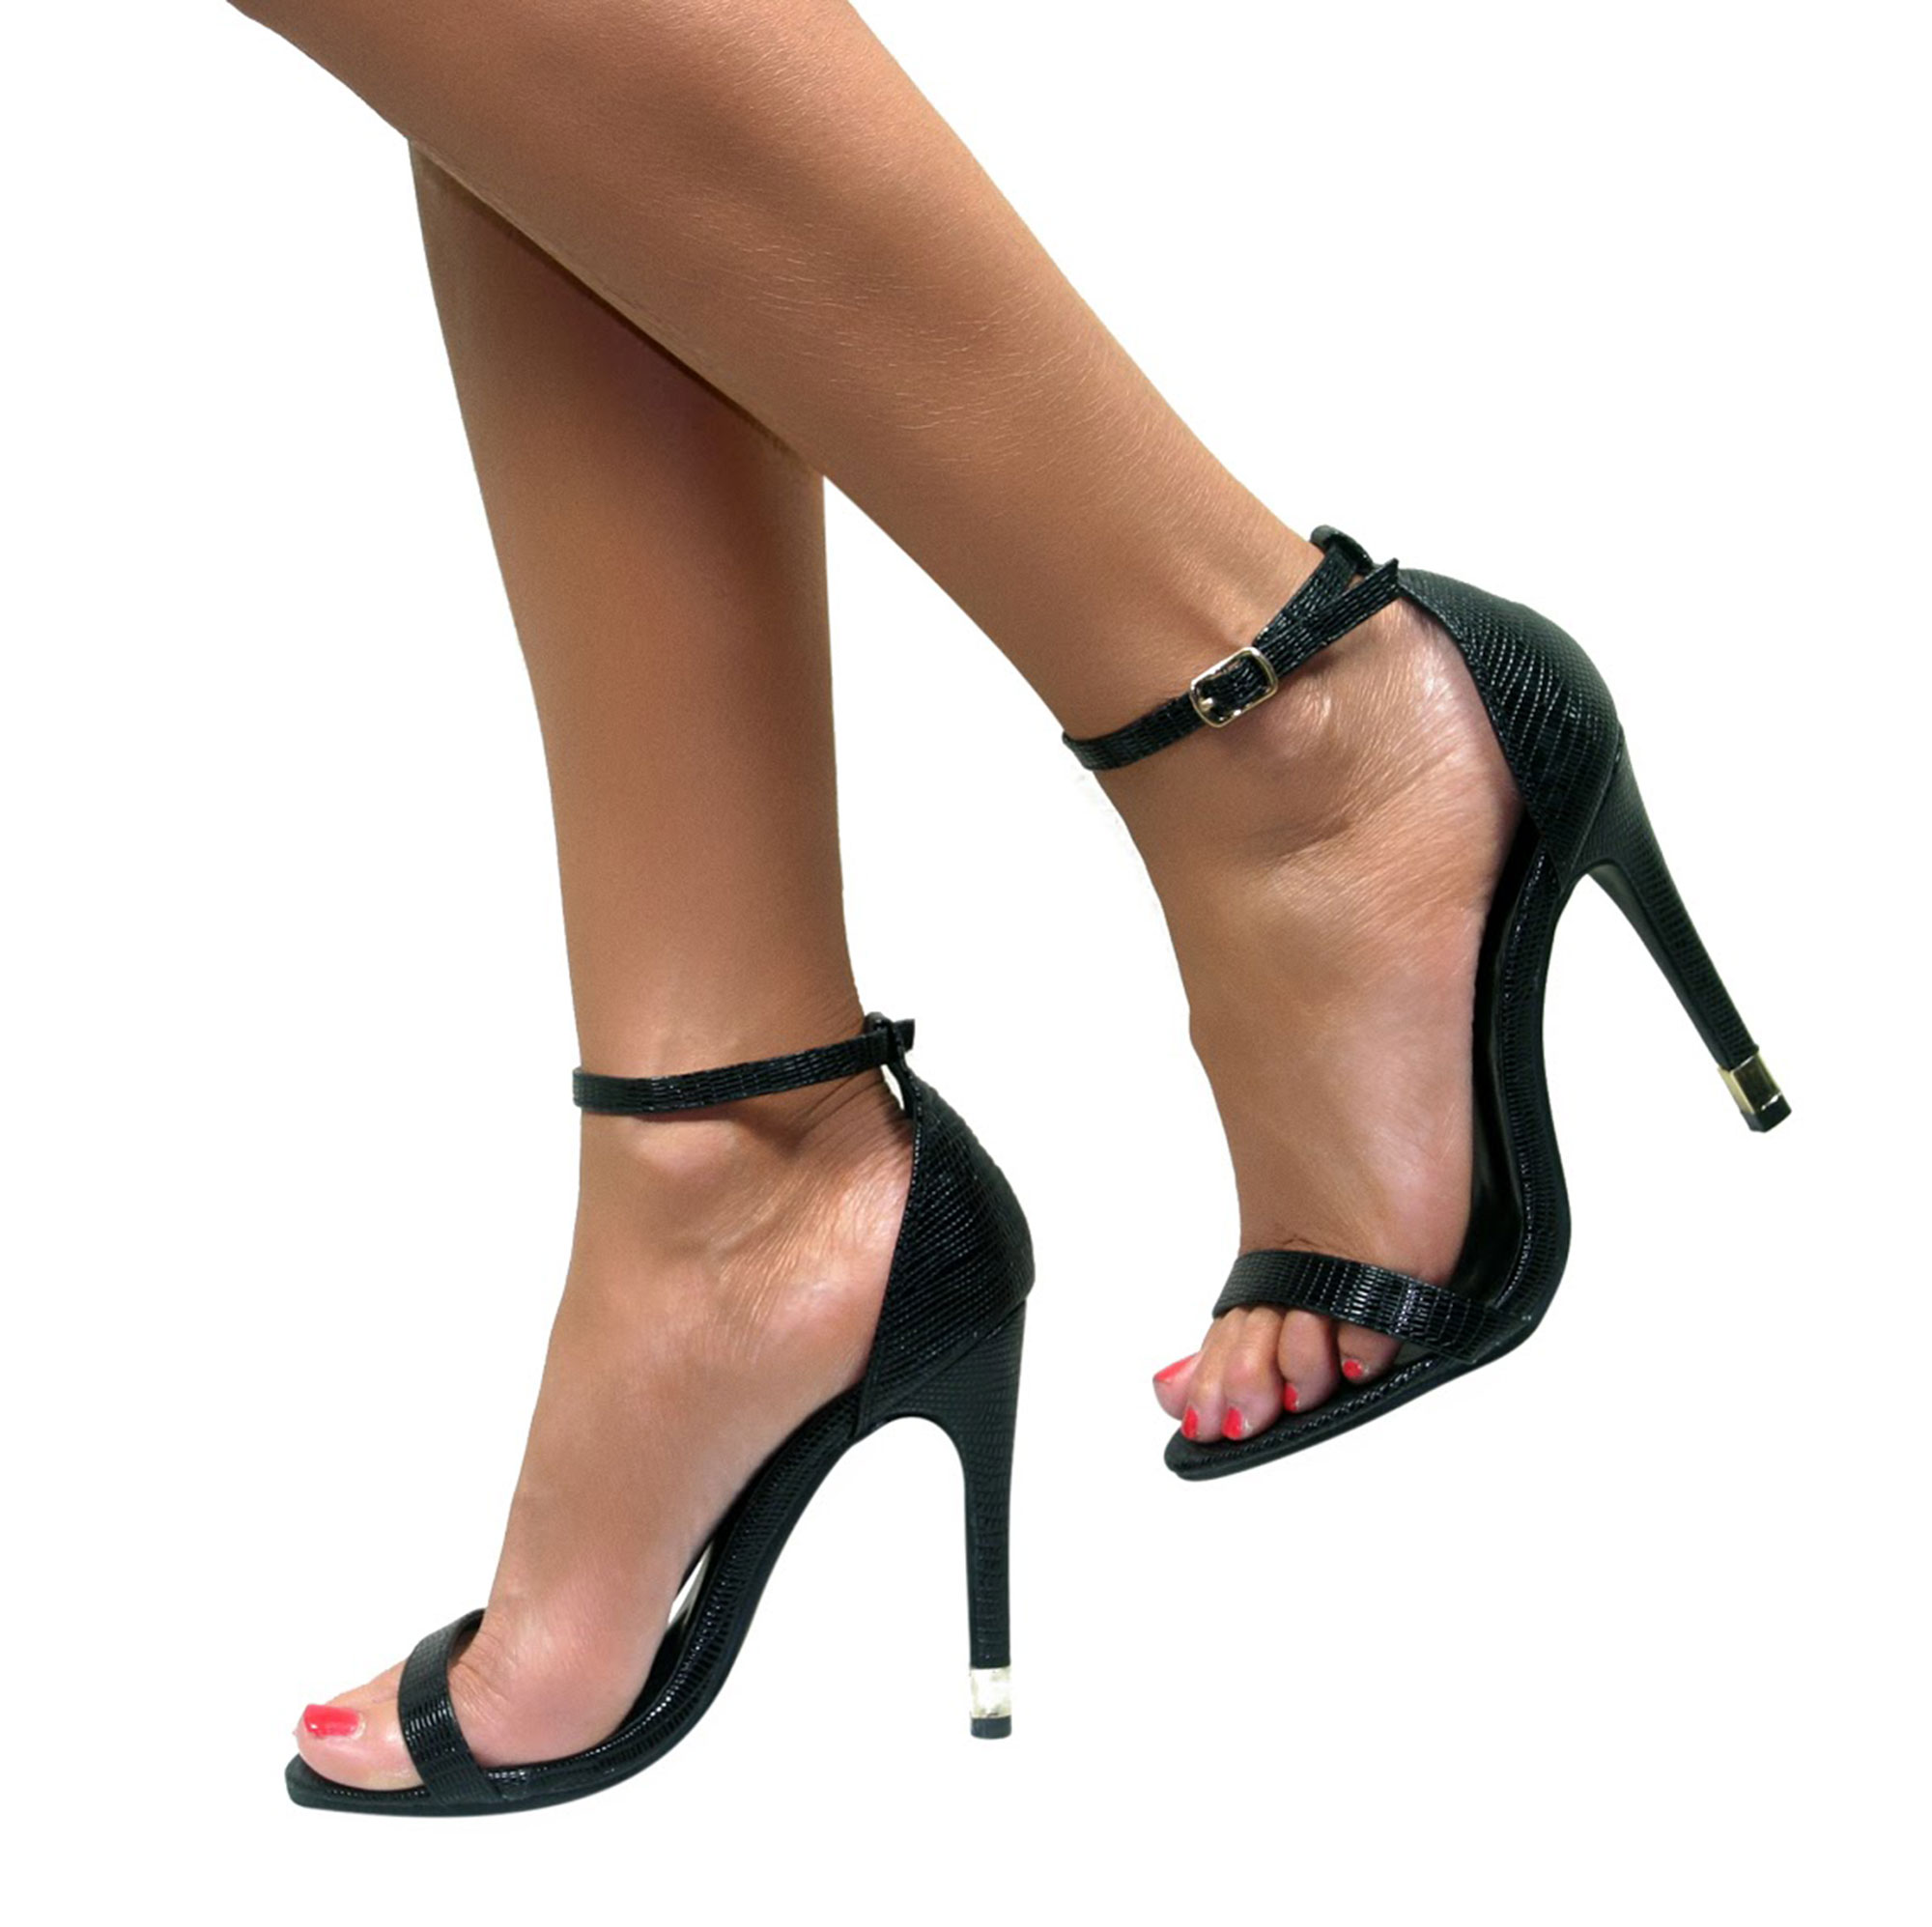 30b3829fe2 LADIES STRAPPY STILETTO HIGH HEEL BARELY THERE SANDALS ANKLE STRAP ...